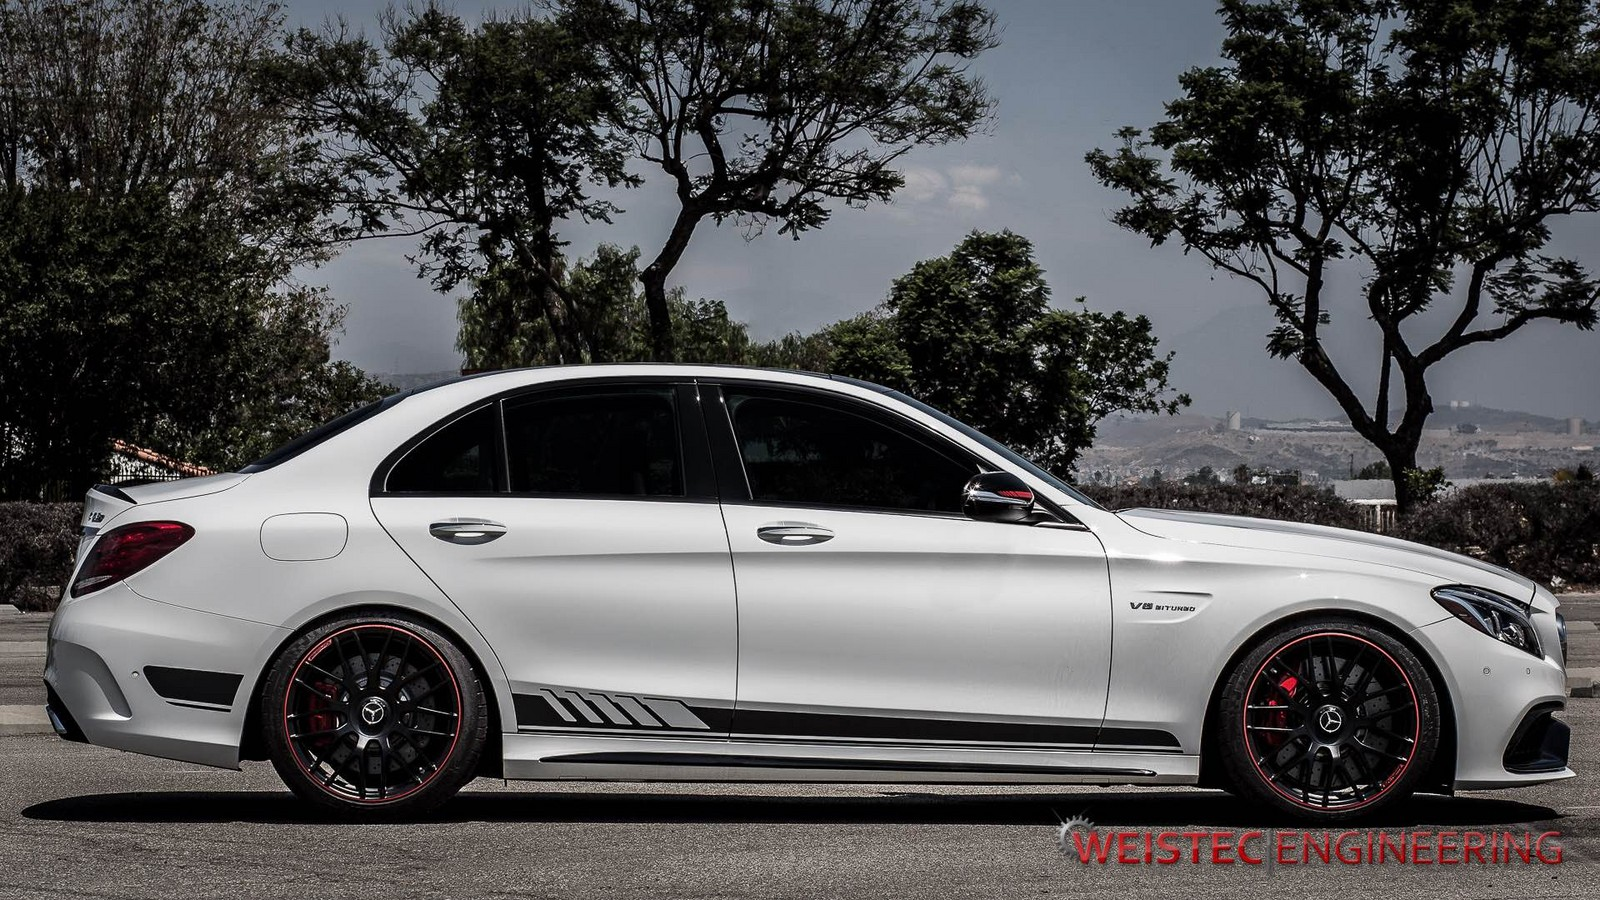 2015 mercedes benz c63 amg w205 weistec 1 4 mile drag racing timeslip specs 0 60. Black Bedroom Furniture Sets. Home Design Ideas